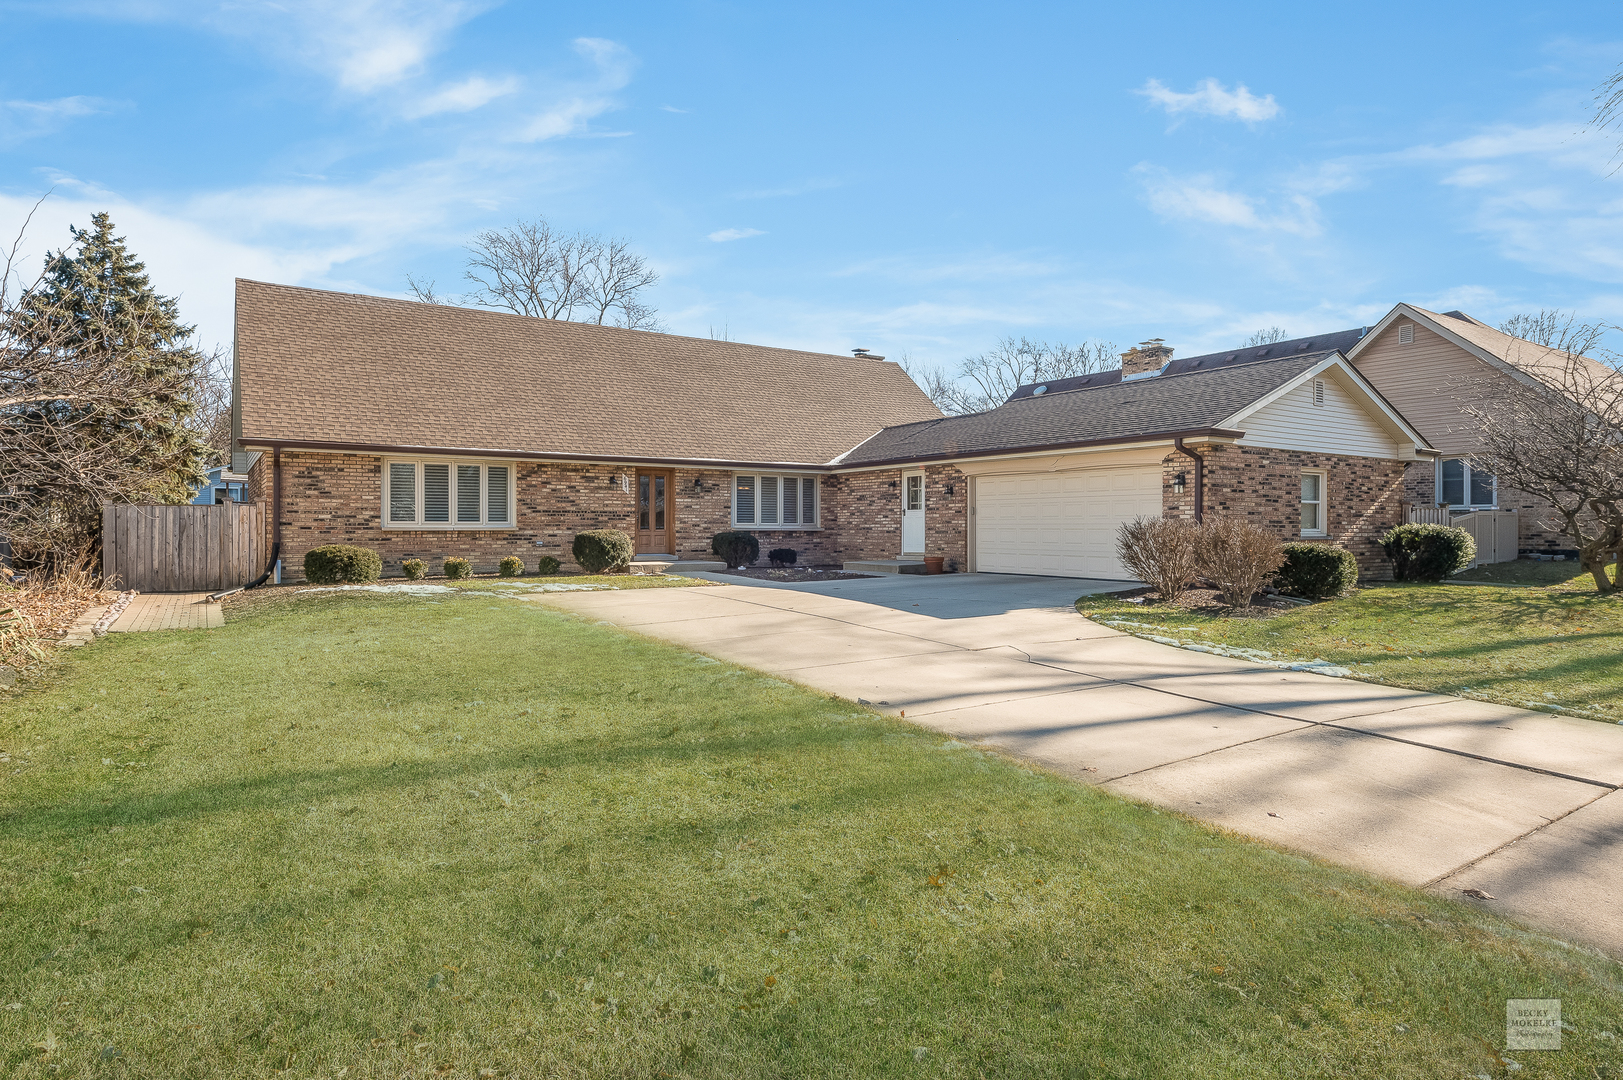 6941 Lyman Avenue 60516 - One of Downers Grove Homes for Sale